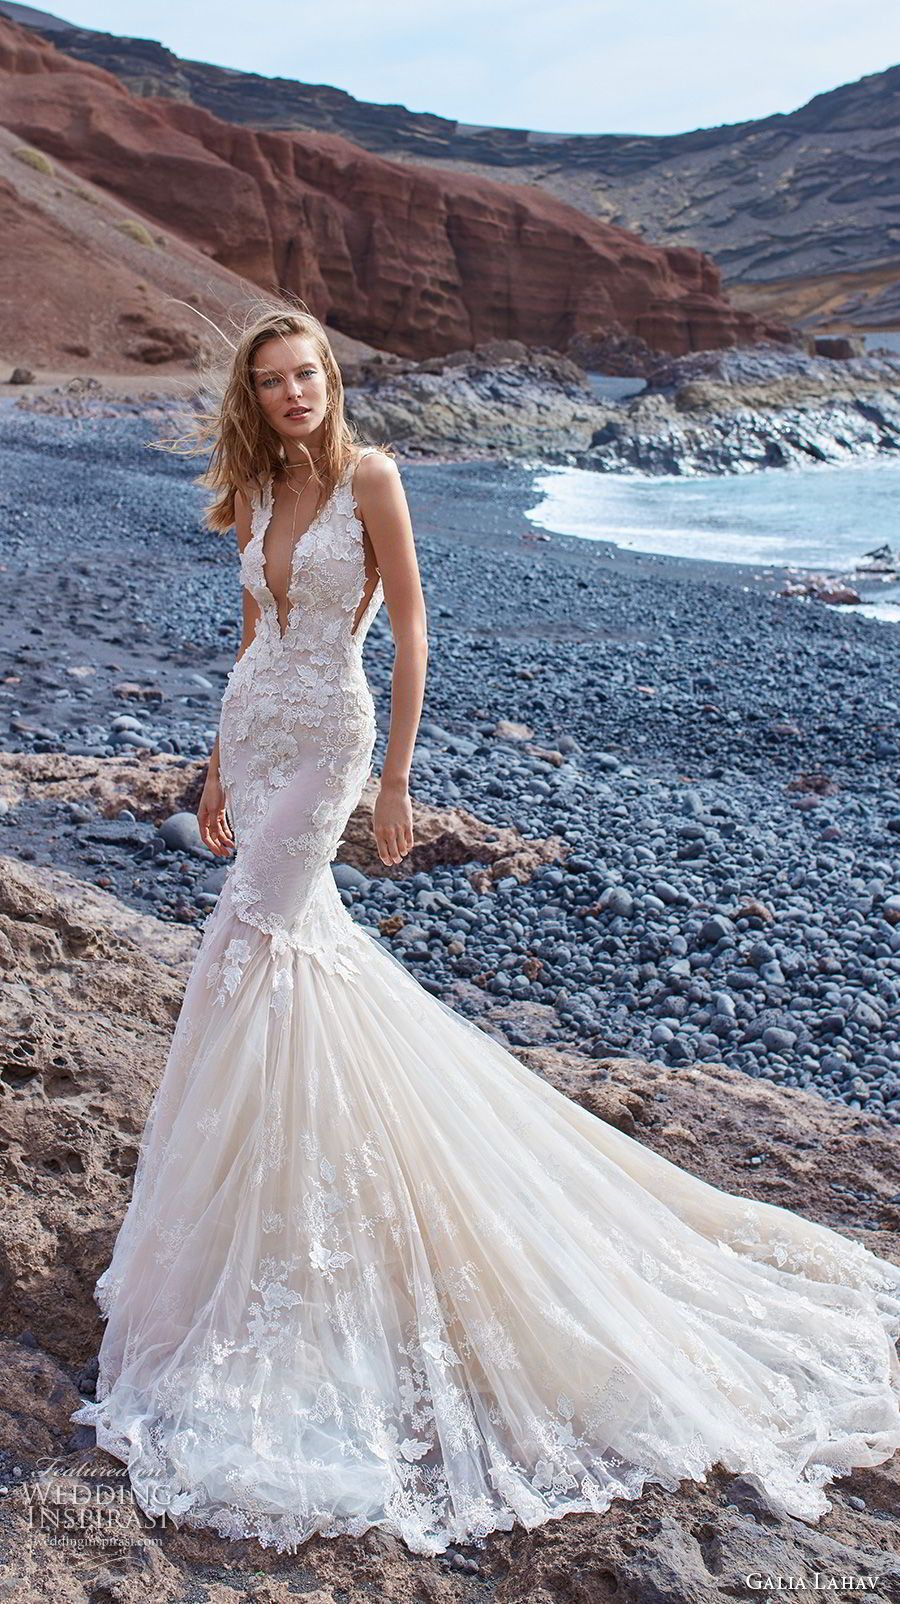 Galia Lahav Gala 2018 Bridal Sleeveless Deep V Neck Heavily Embellished Bodice Open Side Elegant Y Mermaid Wedding Dress Back Chapel Train 3 Mv